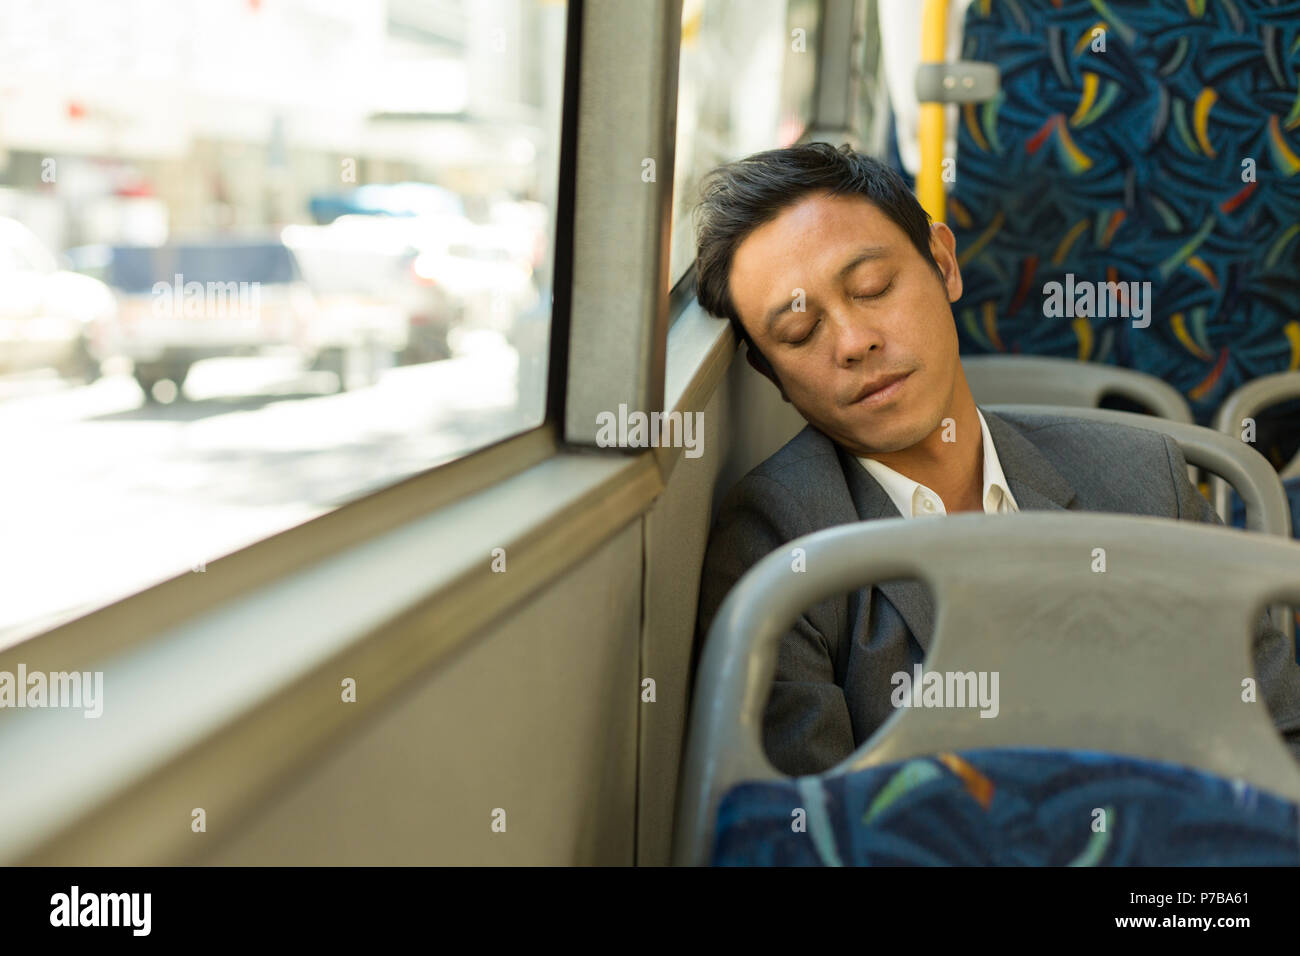 Man sleeping in the bus - Stock Image